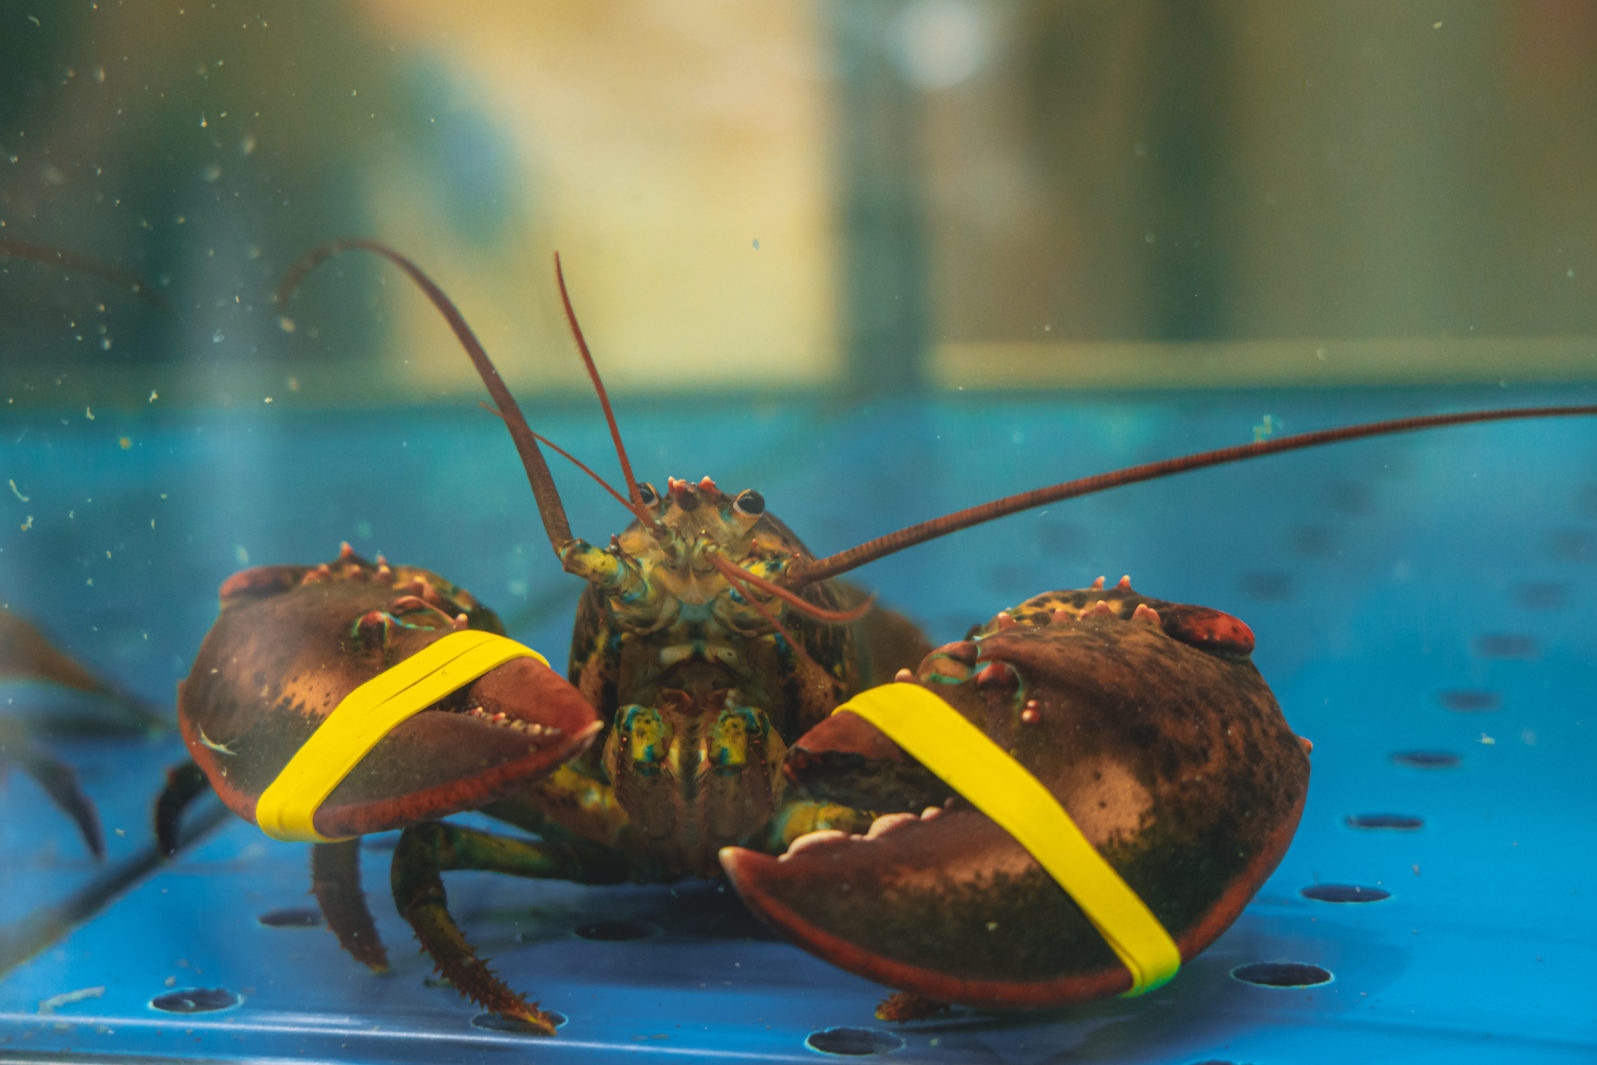 Live lobster in the aquarium. Product in the supermarket. Close up photo of big lobsters in water tank for sale